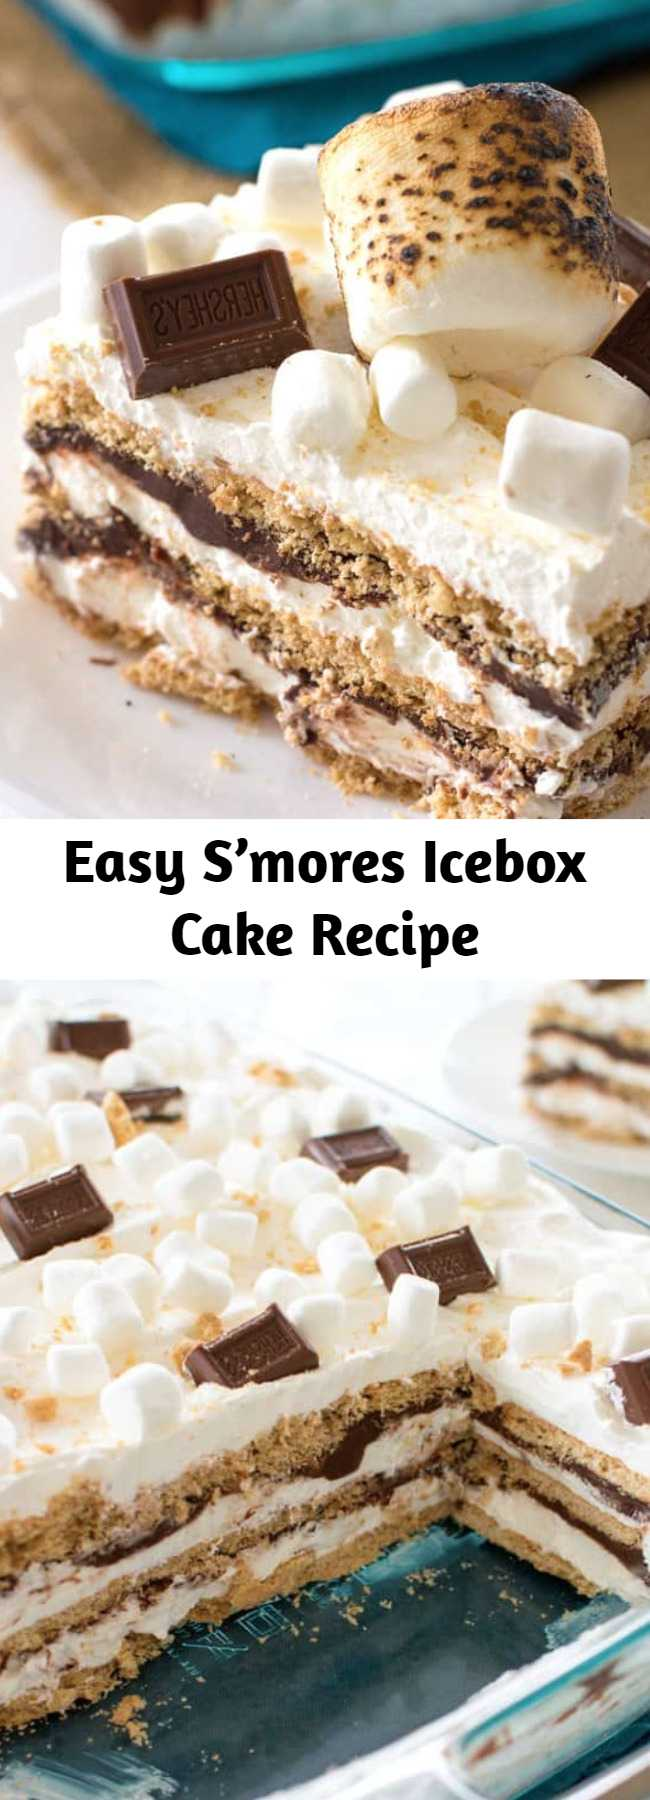 Easy S'mores Icebox Cake Recipe - Bring the s'mores indoors with this S'mores Icebox Cake to feed a crowd. With layers of graham crackers, marshmallow whipped cream, and chocolate ganache I guarantee everyone will be clamoring for s'more! #smores #hersheys #iceboxcake #cake #summer